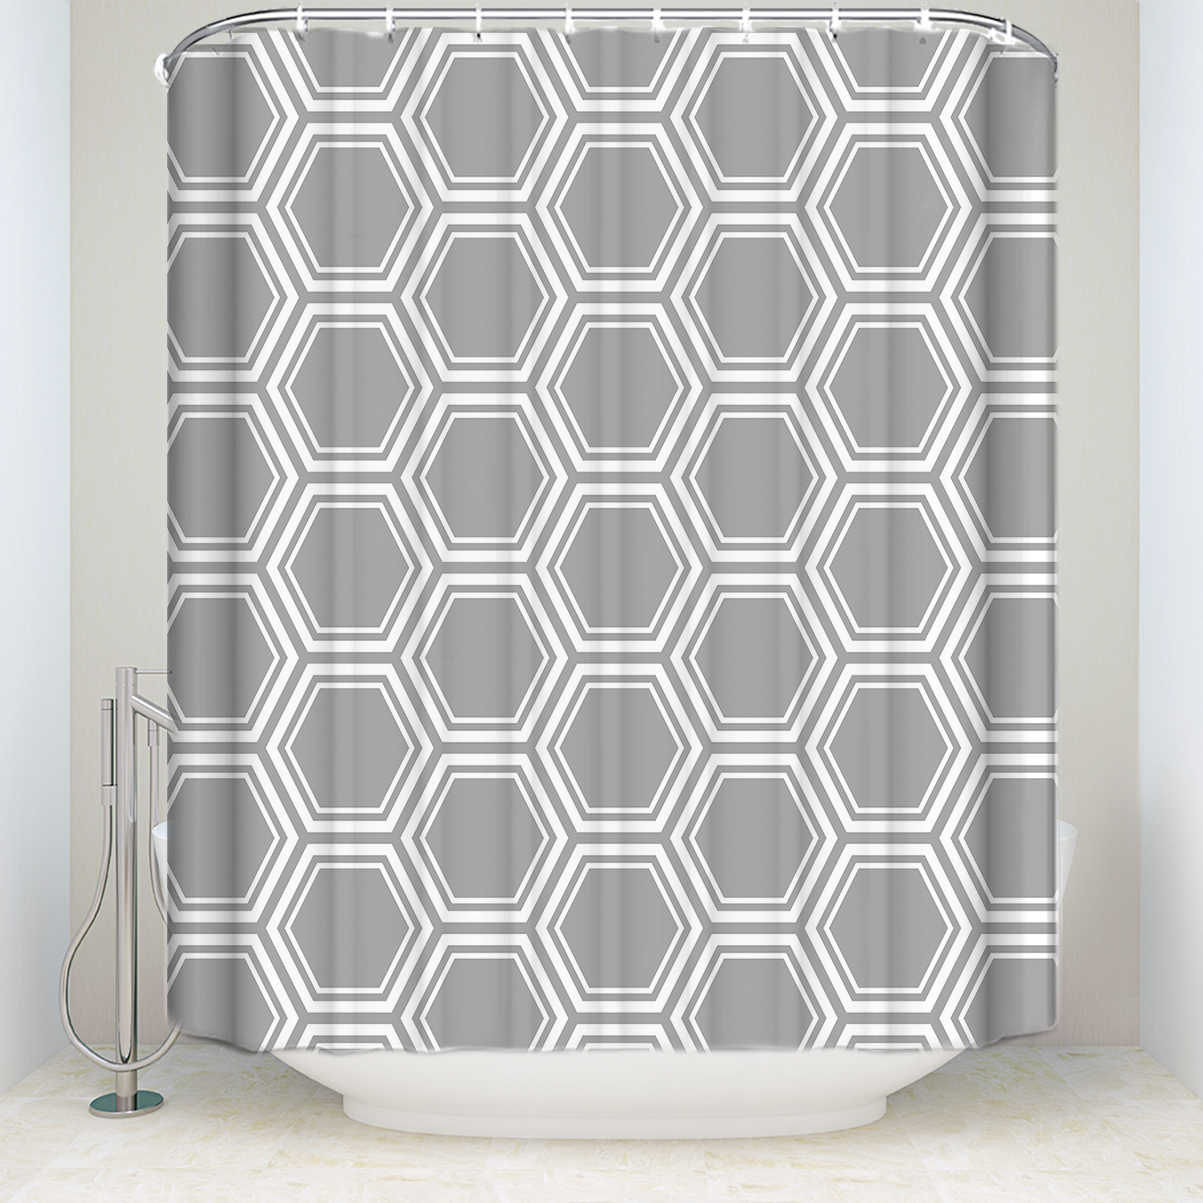 New Waterproof Geometric Shower Curtain With Hooks Polyester Fabric Moroccan Style Gray Bathroom Curtains For Home Decorations Shower Curtains Aliexpress